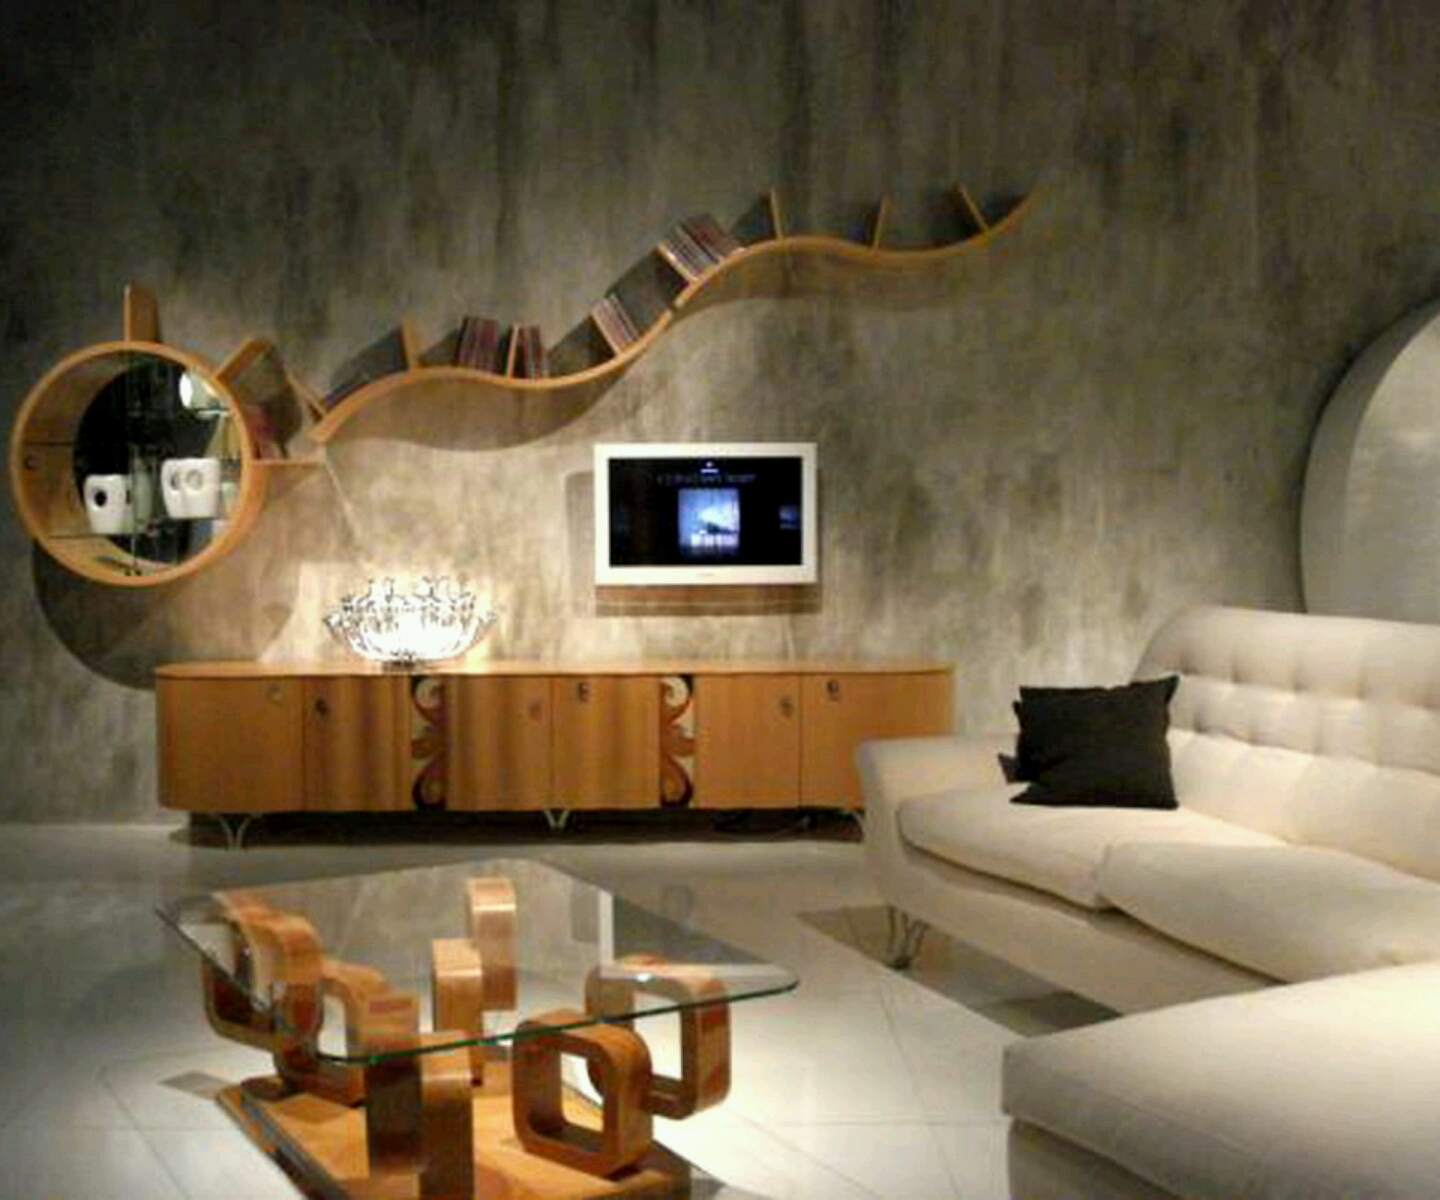 captivating modern living room design ideas | New home designs latest.: Modern living room designs ideas.